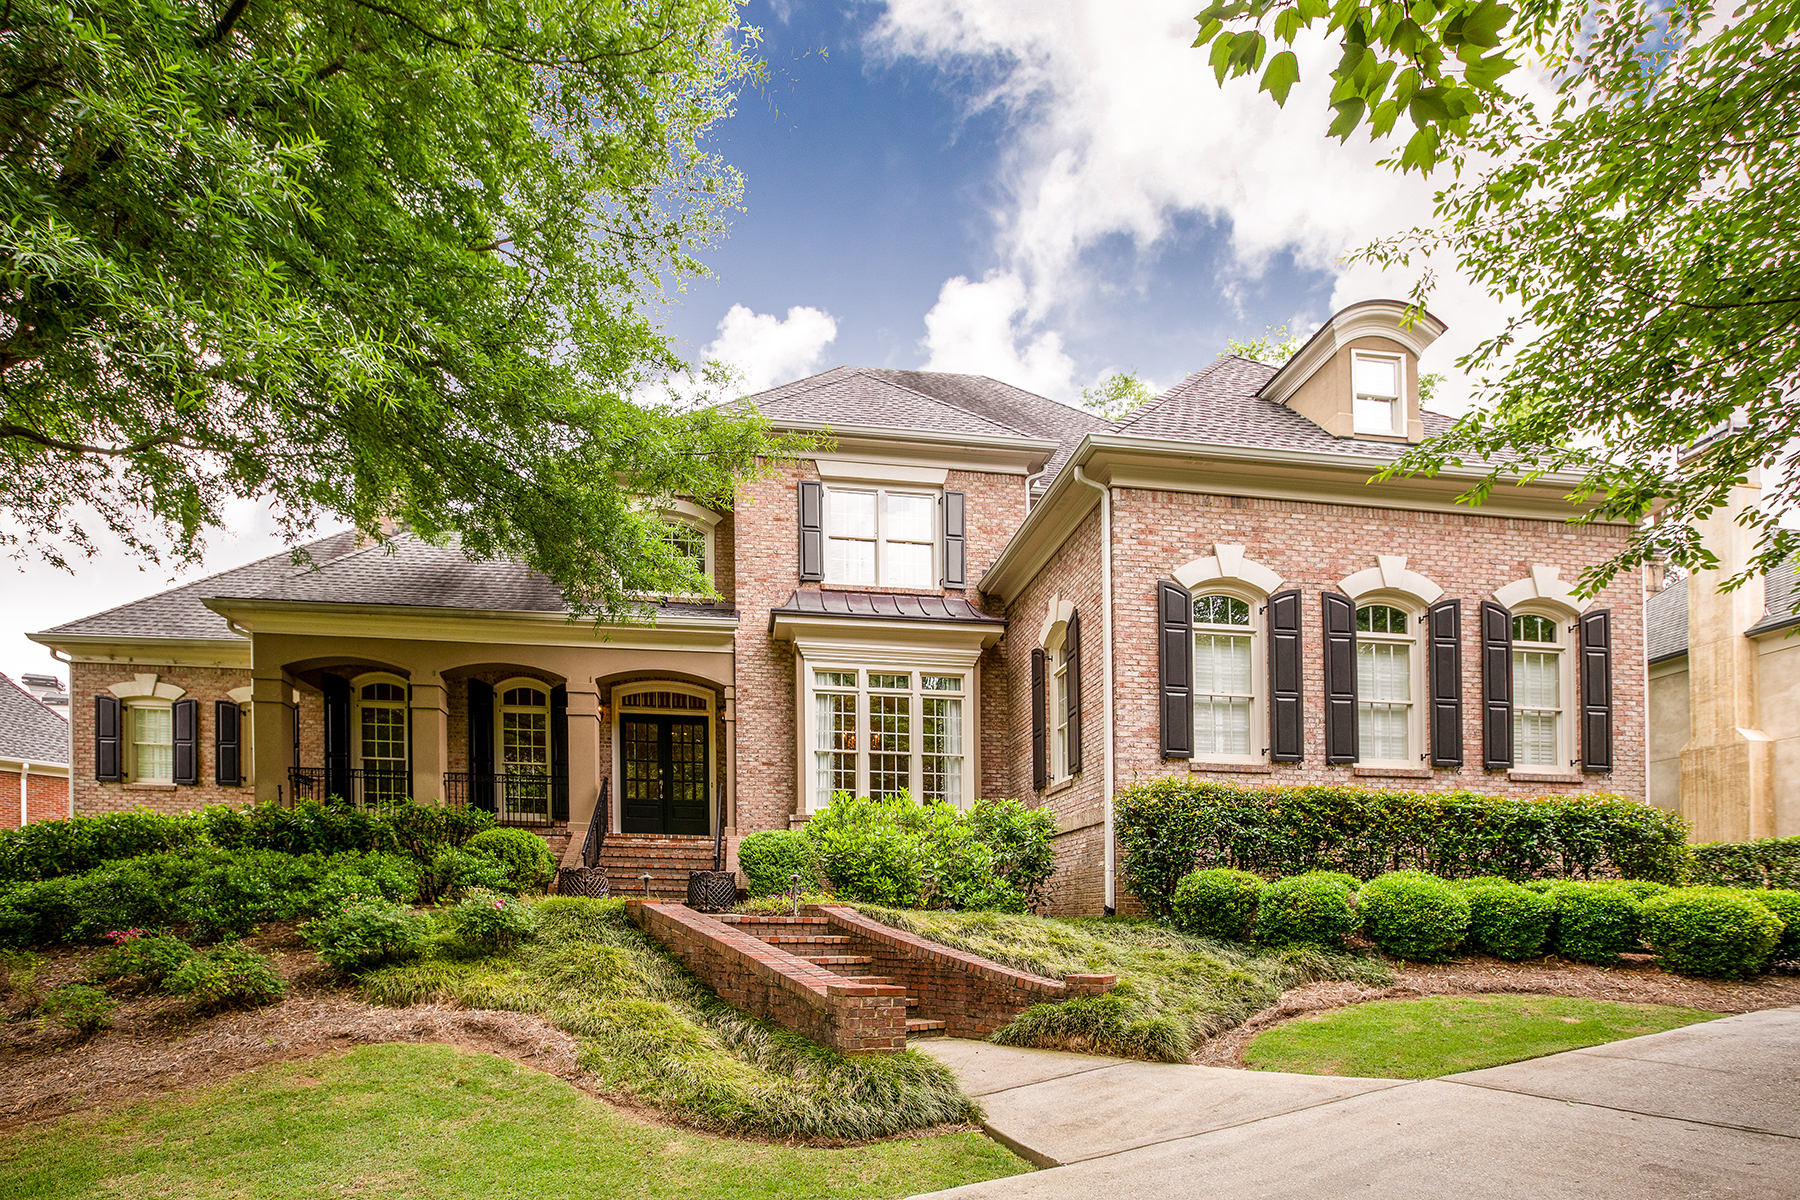 Single Family Home for Sale at Custom Brick Home In Gated Winfield 310 Marshy Pointe Johns Creek, Georgia 30097 United States